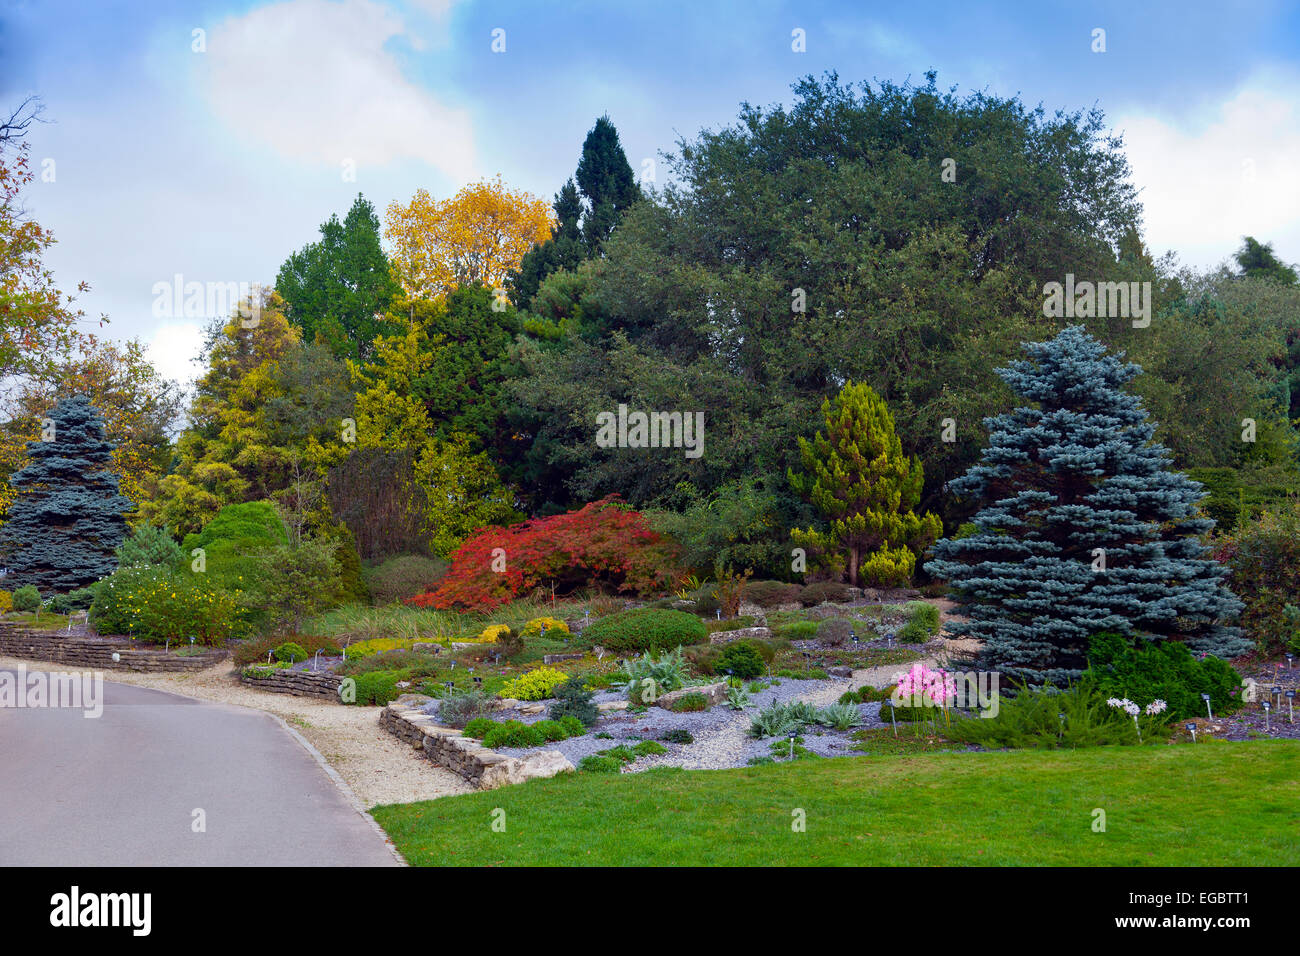 Autumn amongst the conifers at the Sir Harold Hillier Gardens, Romsey, Hampshire, England, UK - Stock Image